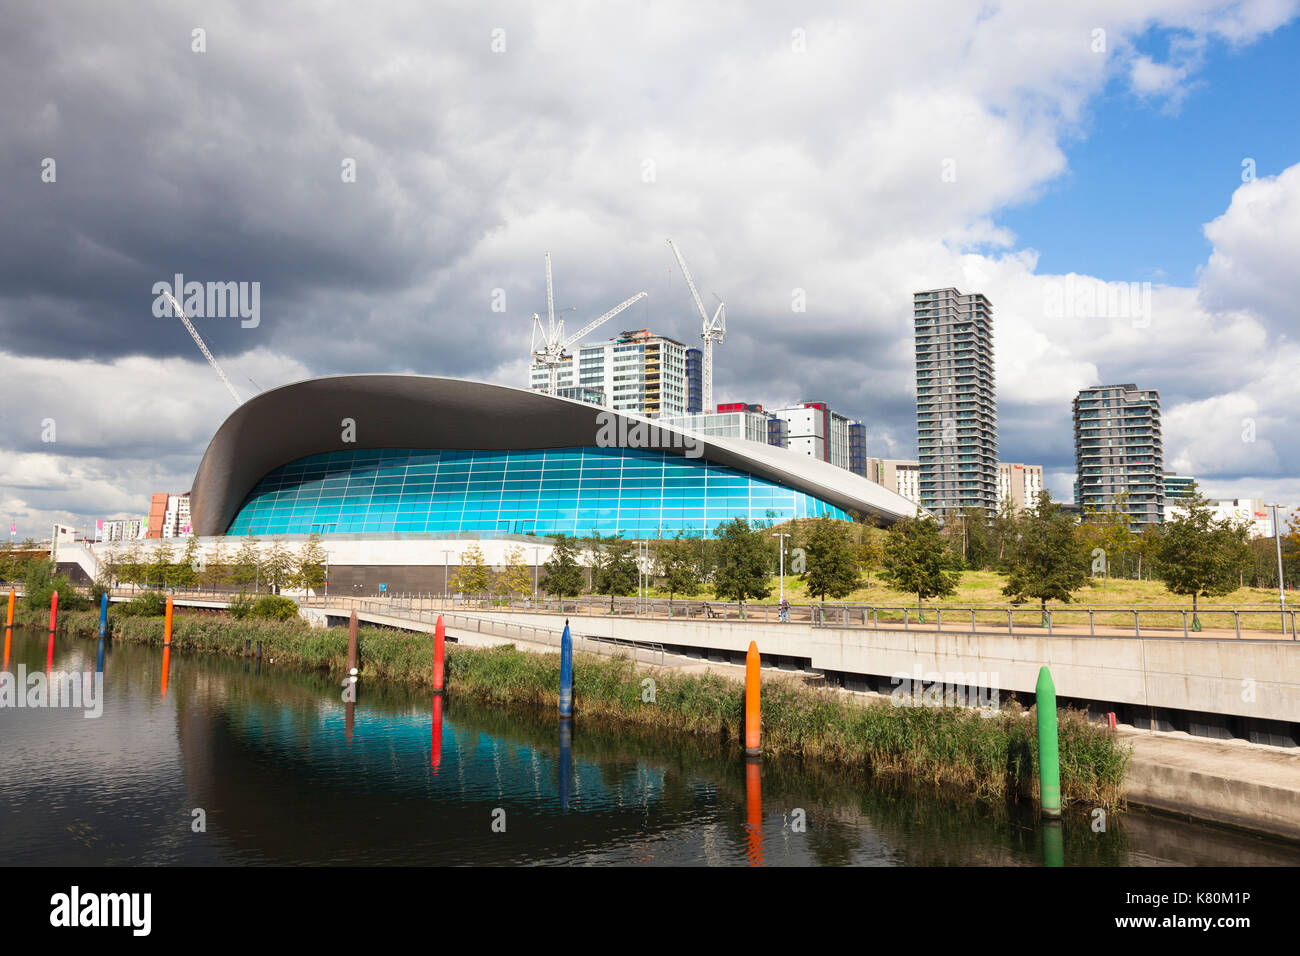 Olympic diving pool stock photos olympic diving pool - Queen elizabeth olympic park swimming pool ...